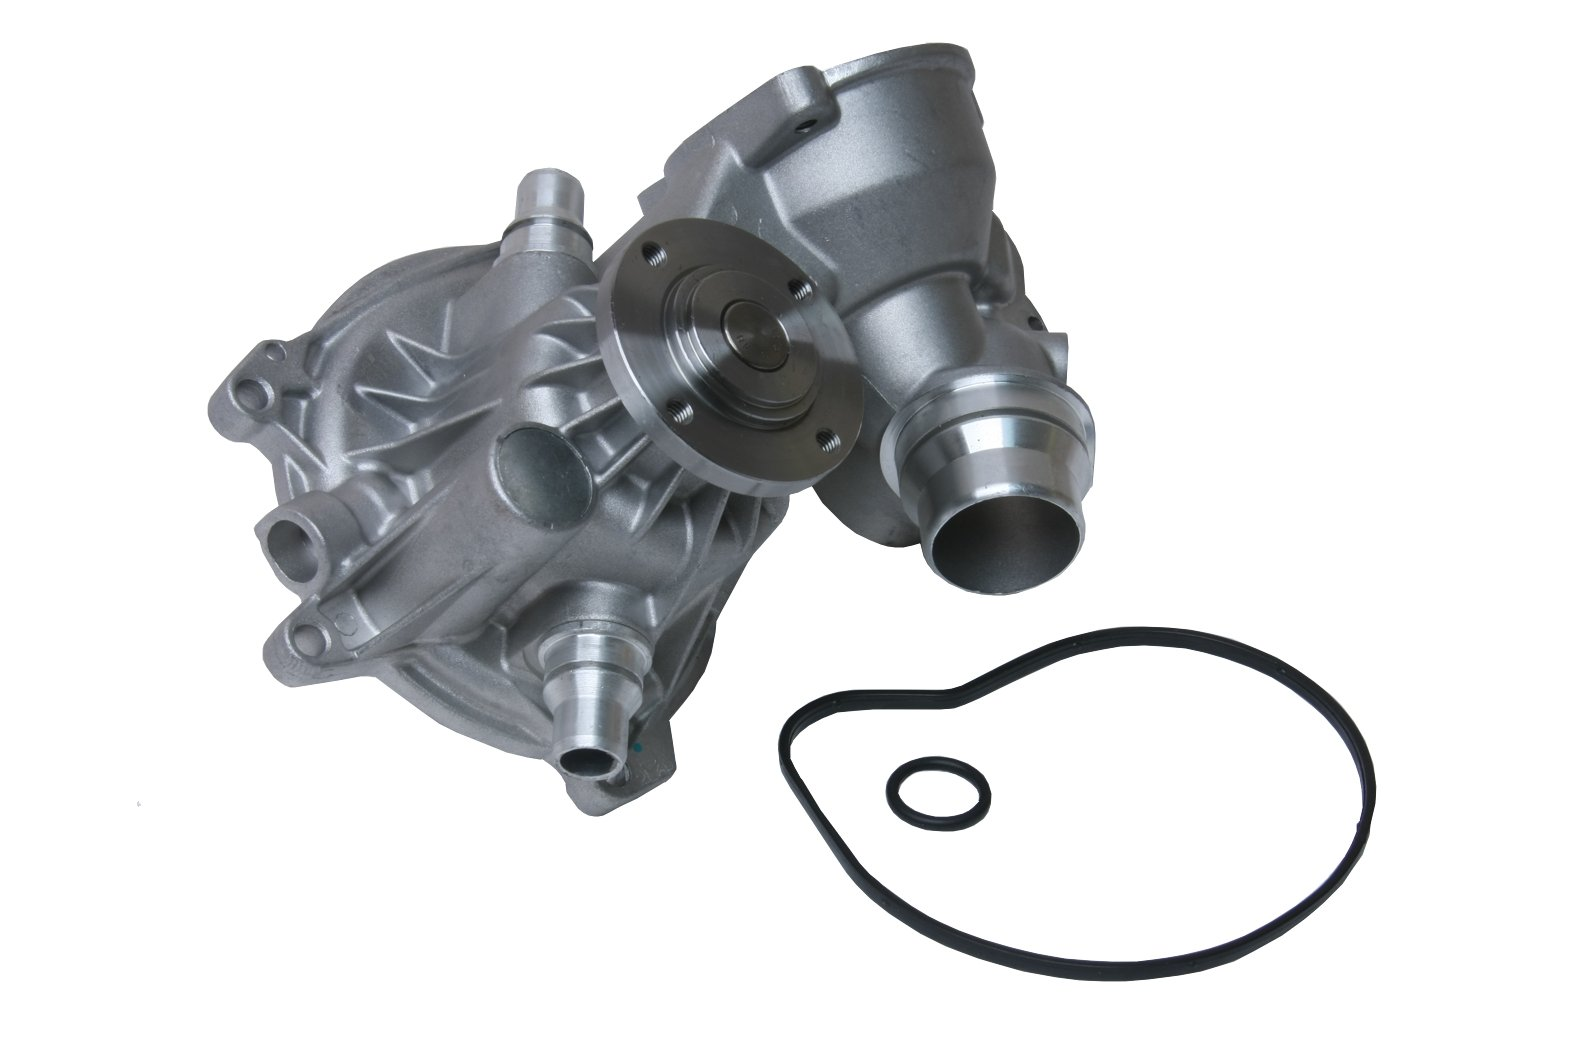 URO Parts 11517586779 Water Pump, w/Metal Impeller by URO Parts